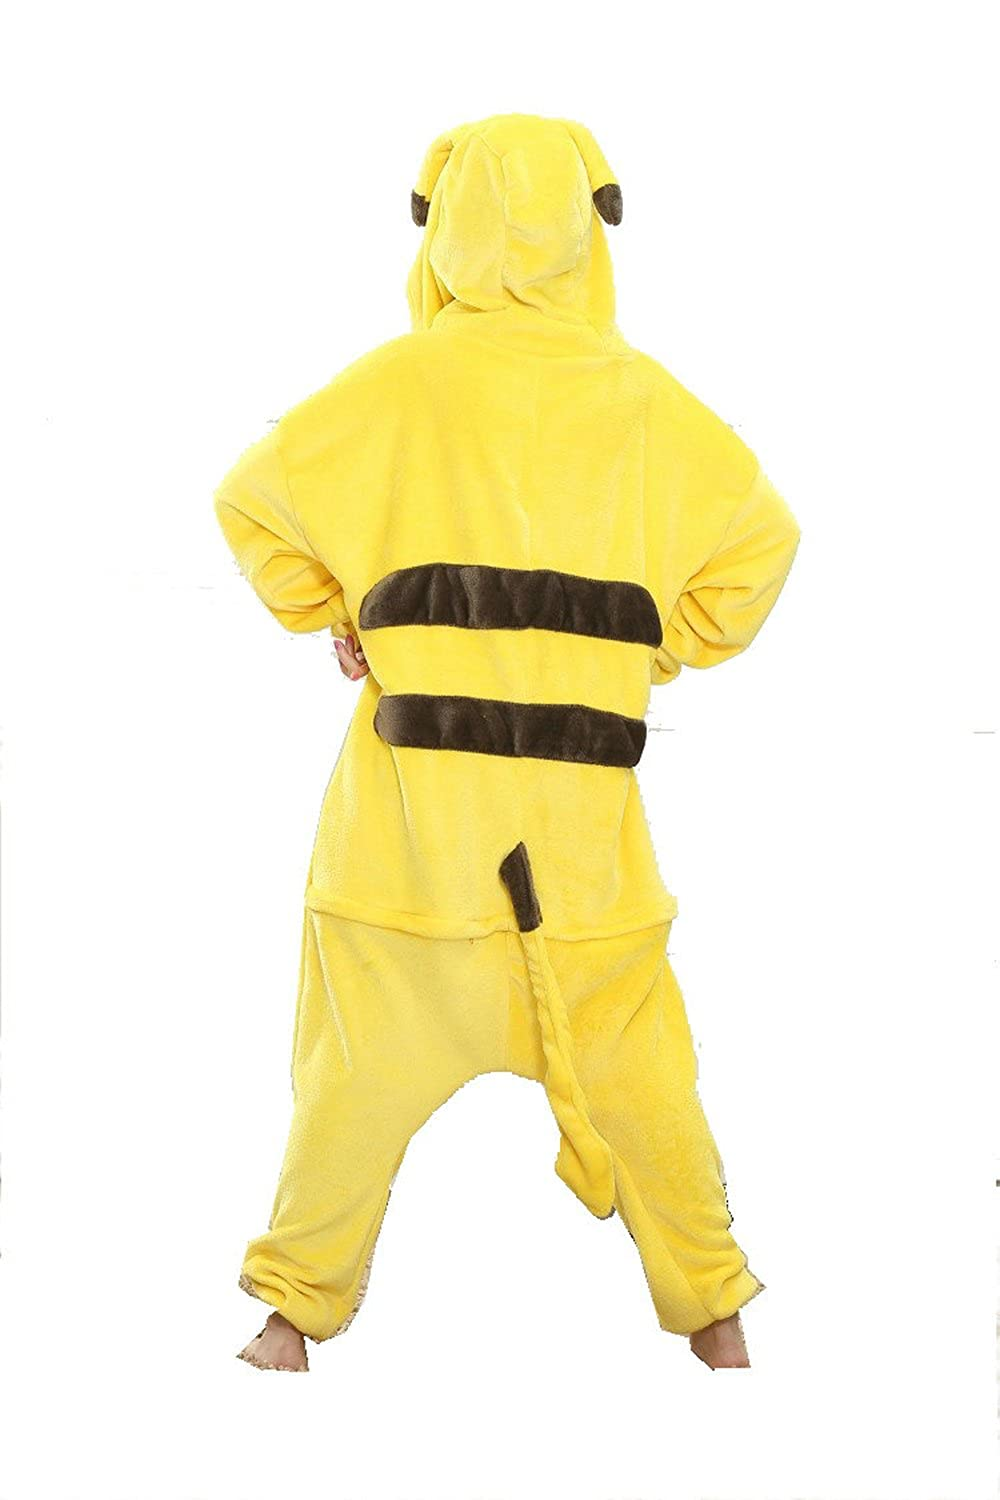 Amazon.com: Pikachu Adult Unisex Animal Kigurumi Cosplay Costume Pajamas Onesies: Clothing